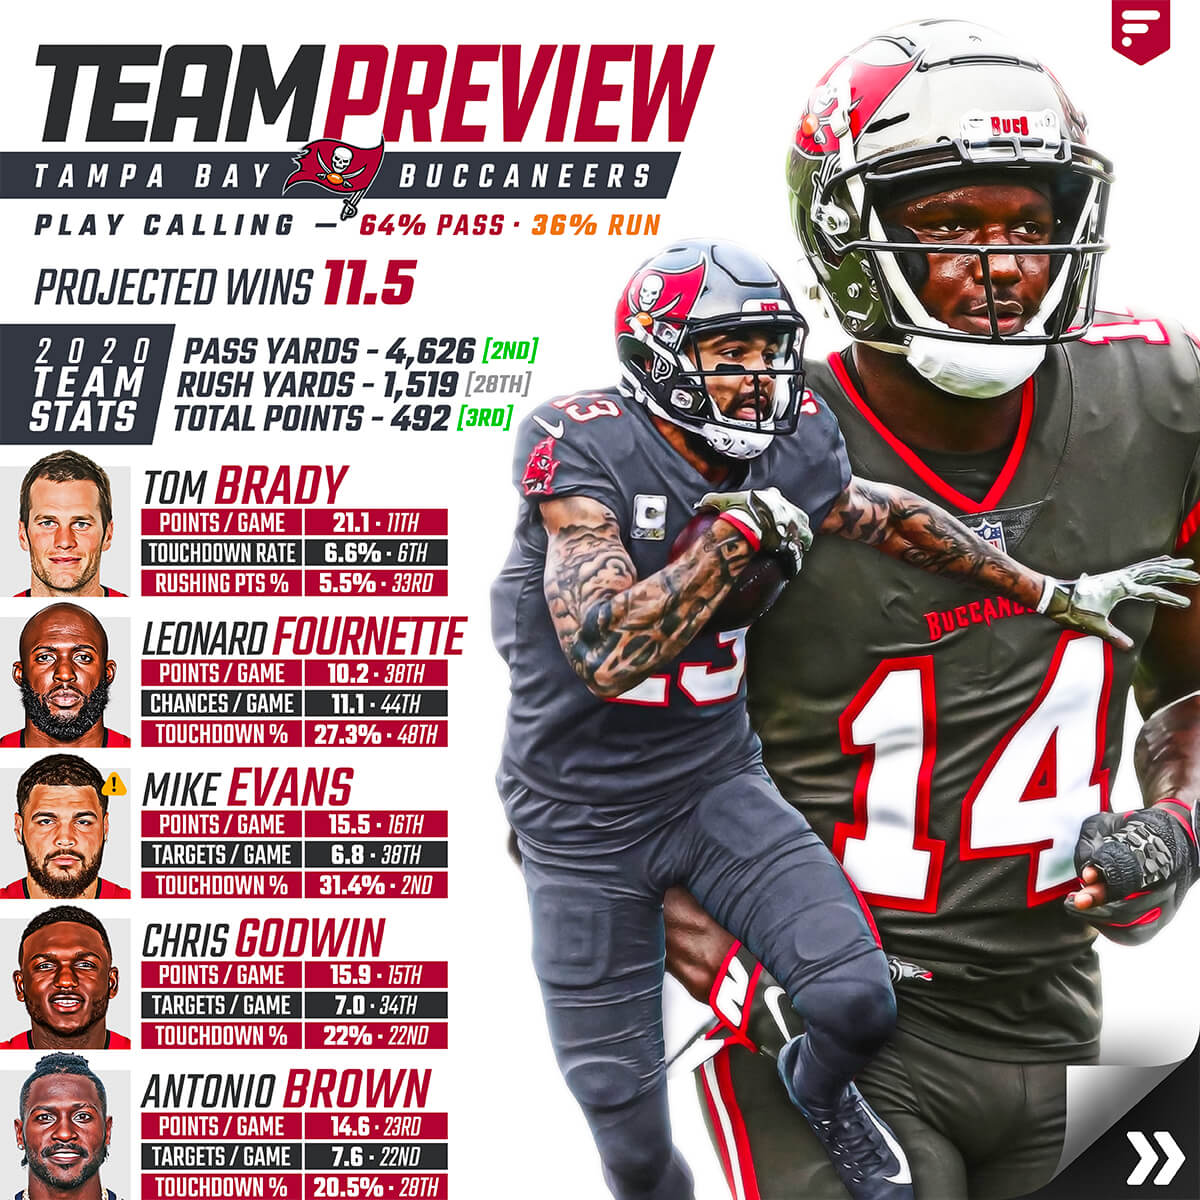 Team Preview Tampa Bay Buccaneers